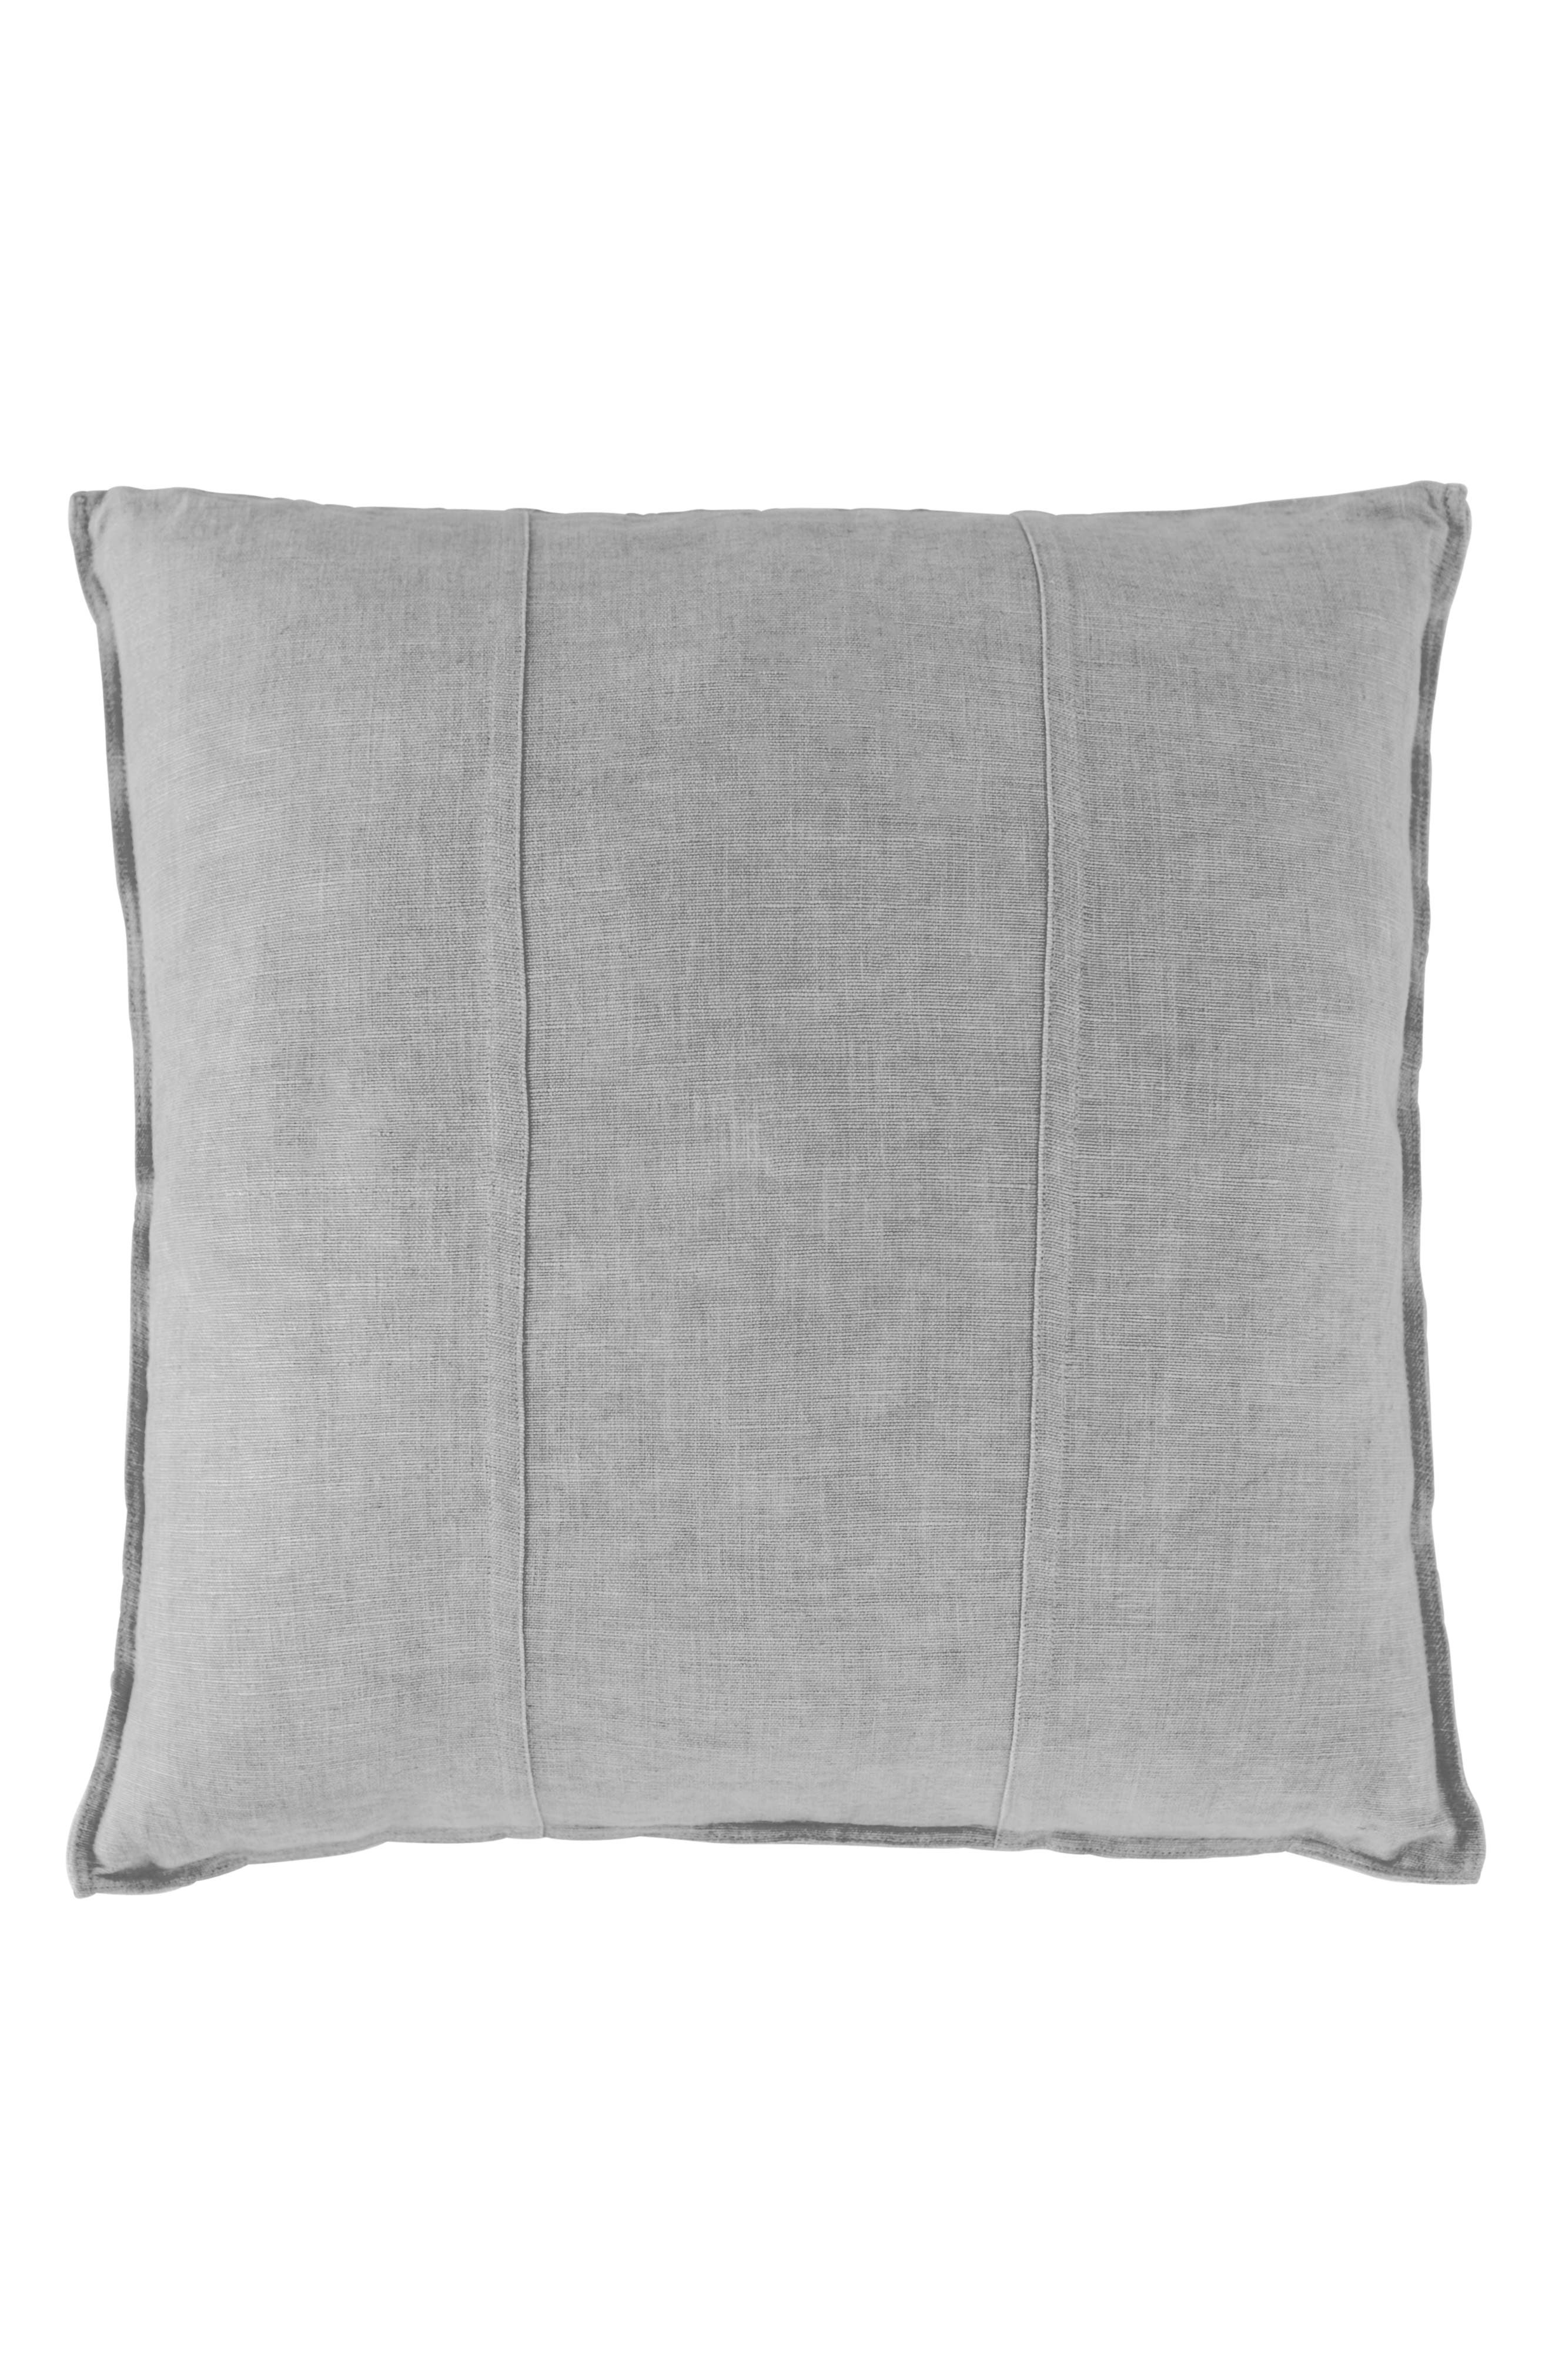 EADIE LIFESTYLE, Luca Pre-Washed Linen Accent Pillow, Main thumbnail 1, color, SILVER GREY